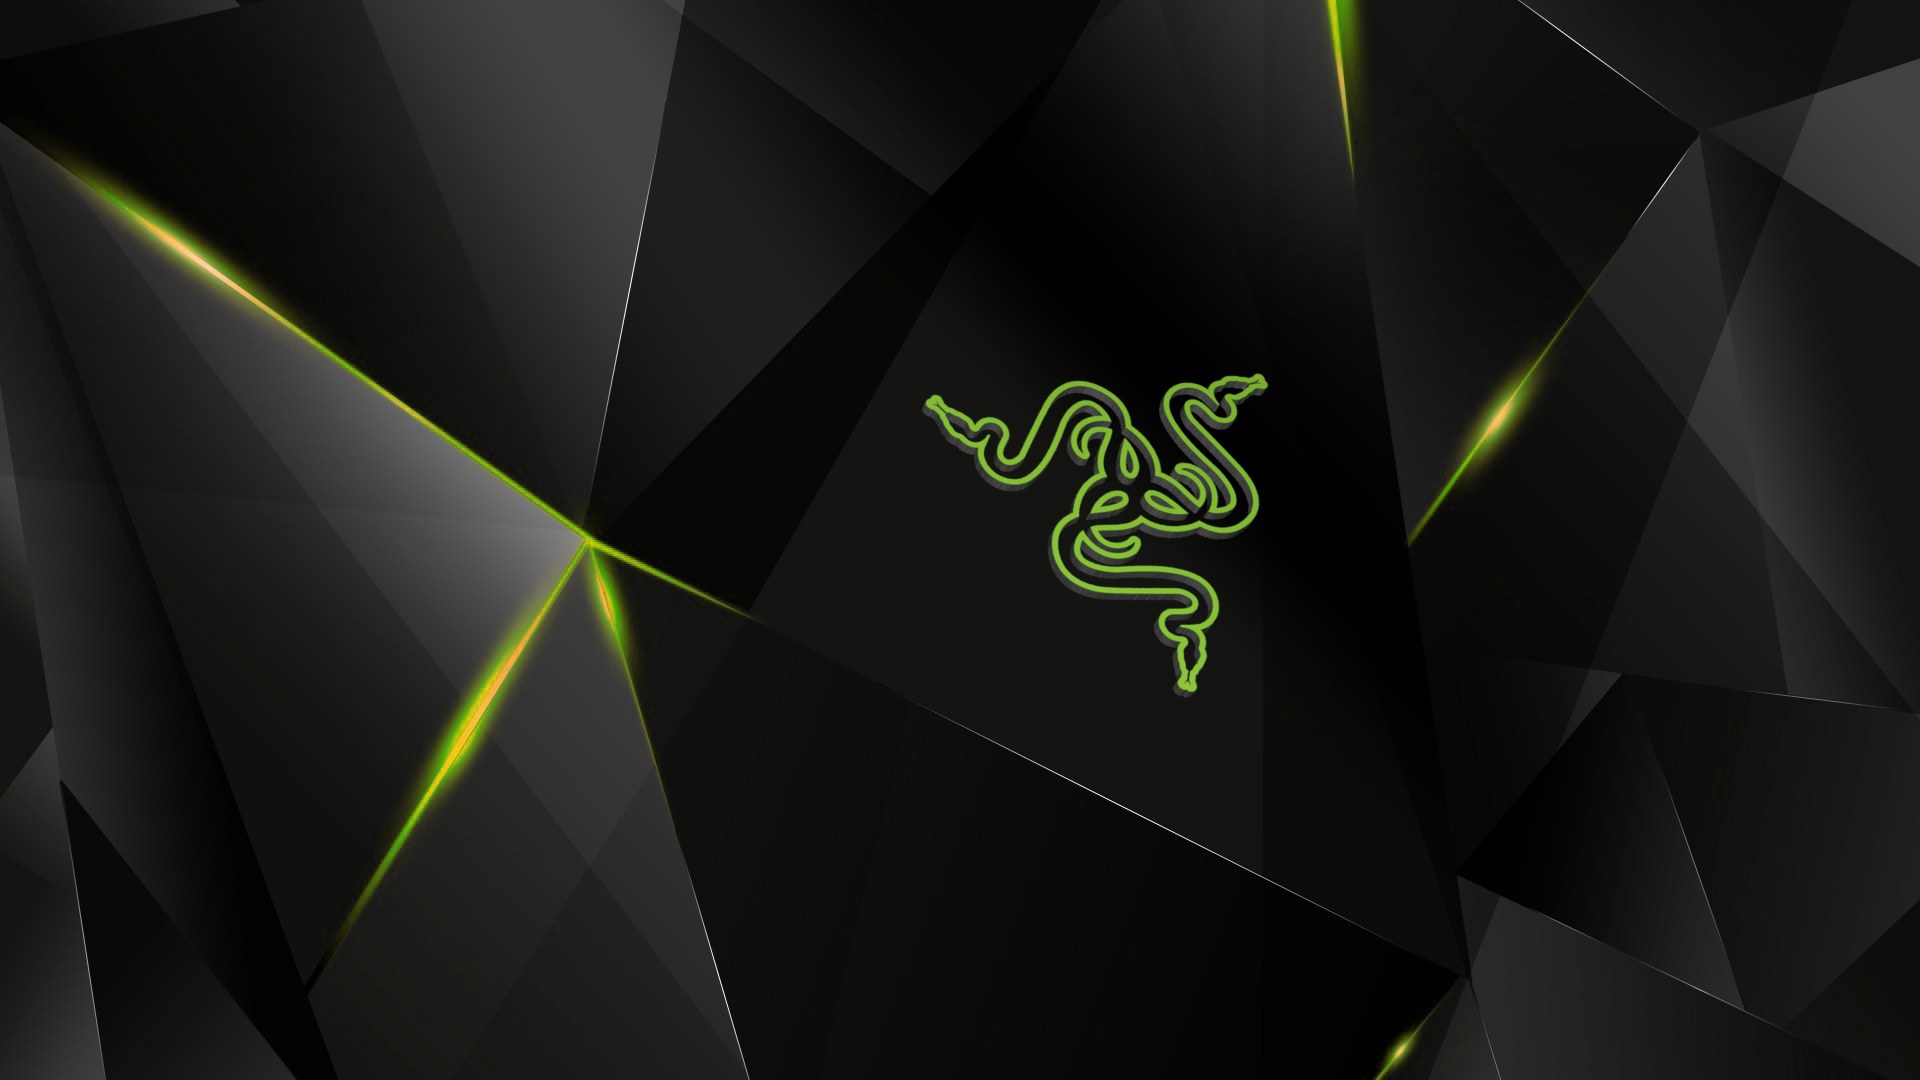 wallpaper] What do you think? | Razer Insider | Forum